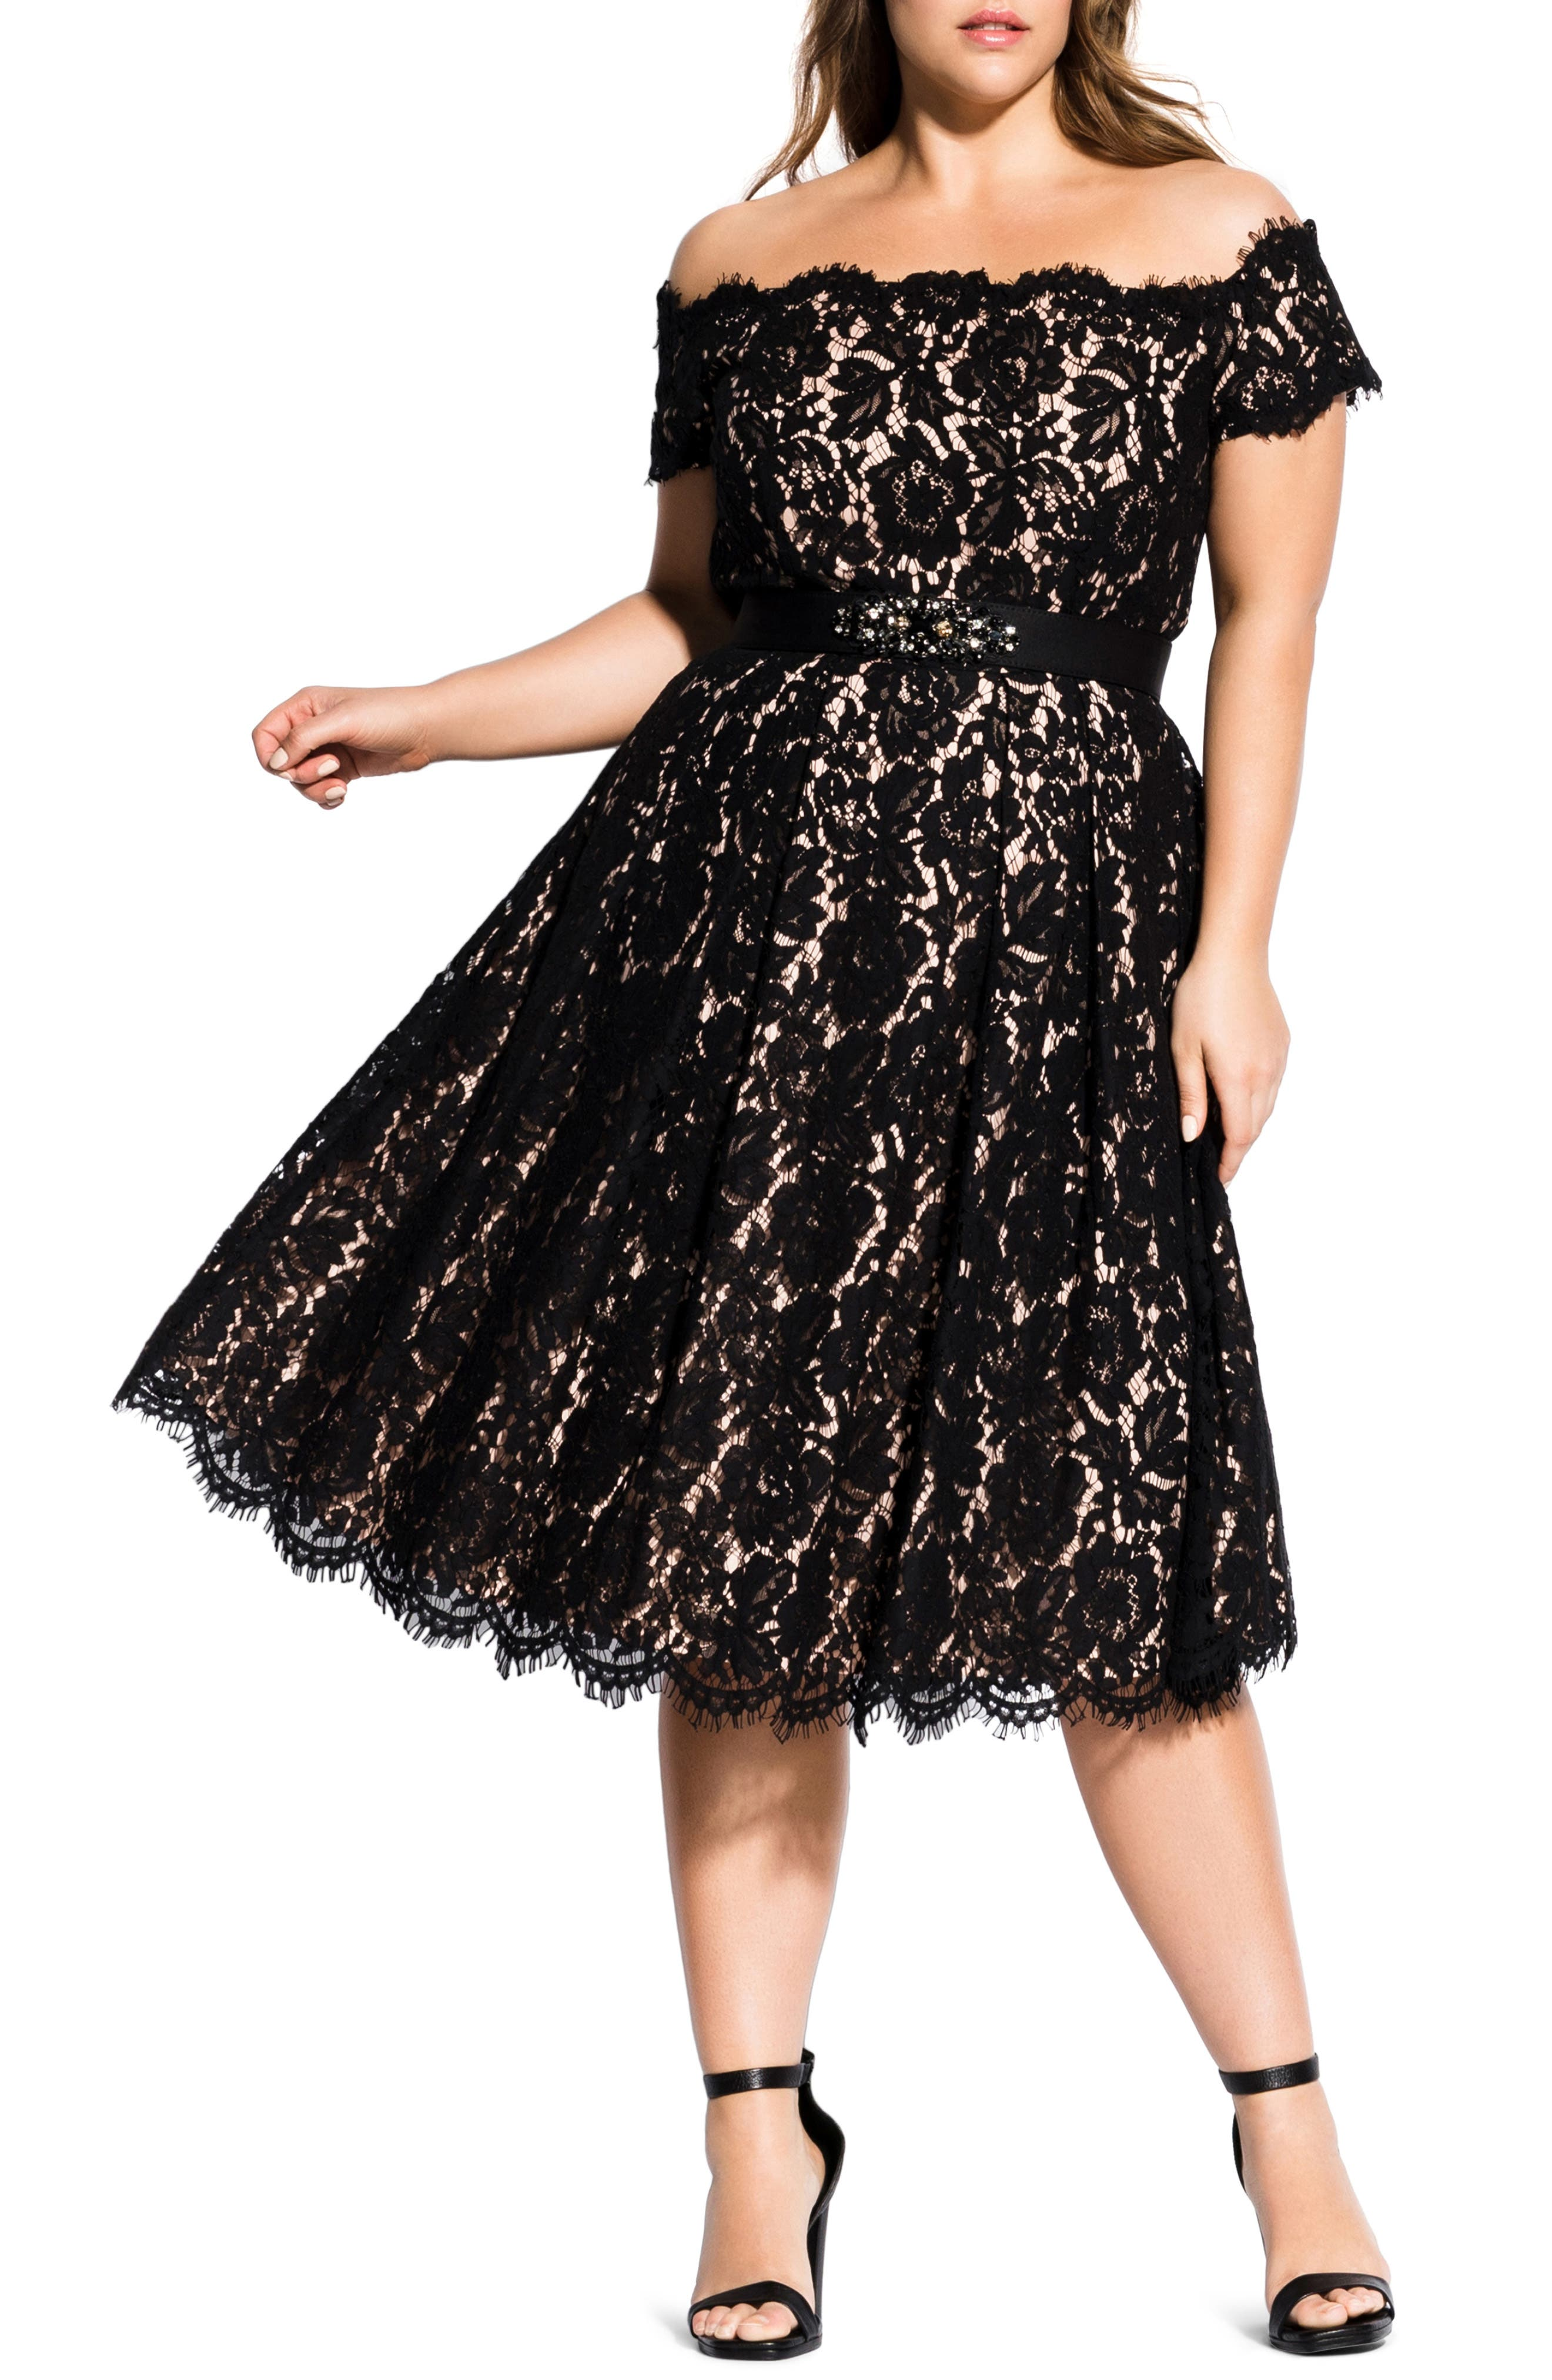 1950s Cocktail Dresses, Party Dresses Plus Size Womens City Chic Off The Shoulder Lace Dreams Midi Dress $169.00 AT vintagedancer.com